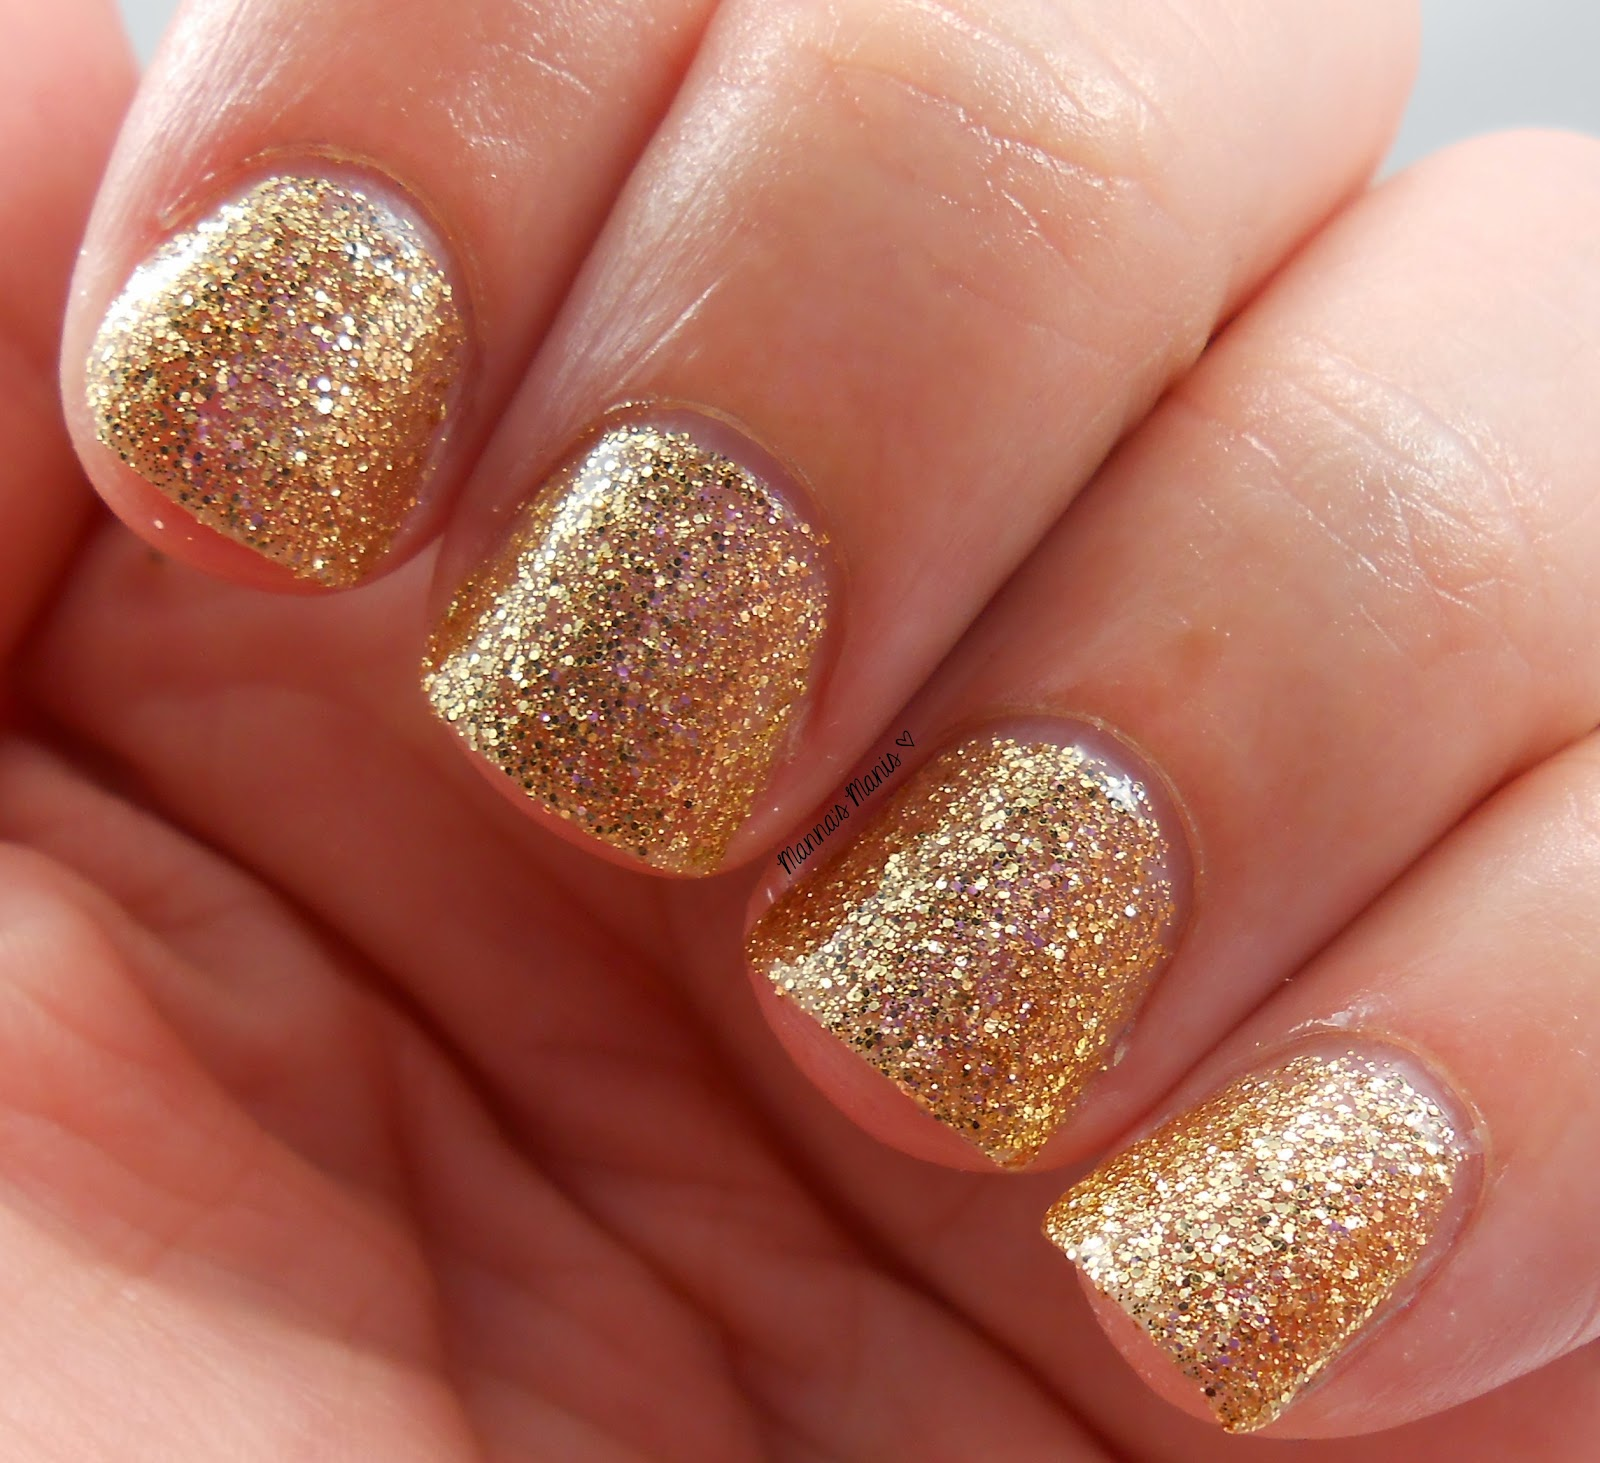 fingerpaints wrapped in ribbon, a full coverage gold microglitter nail polish